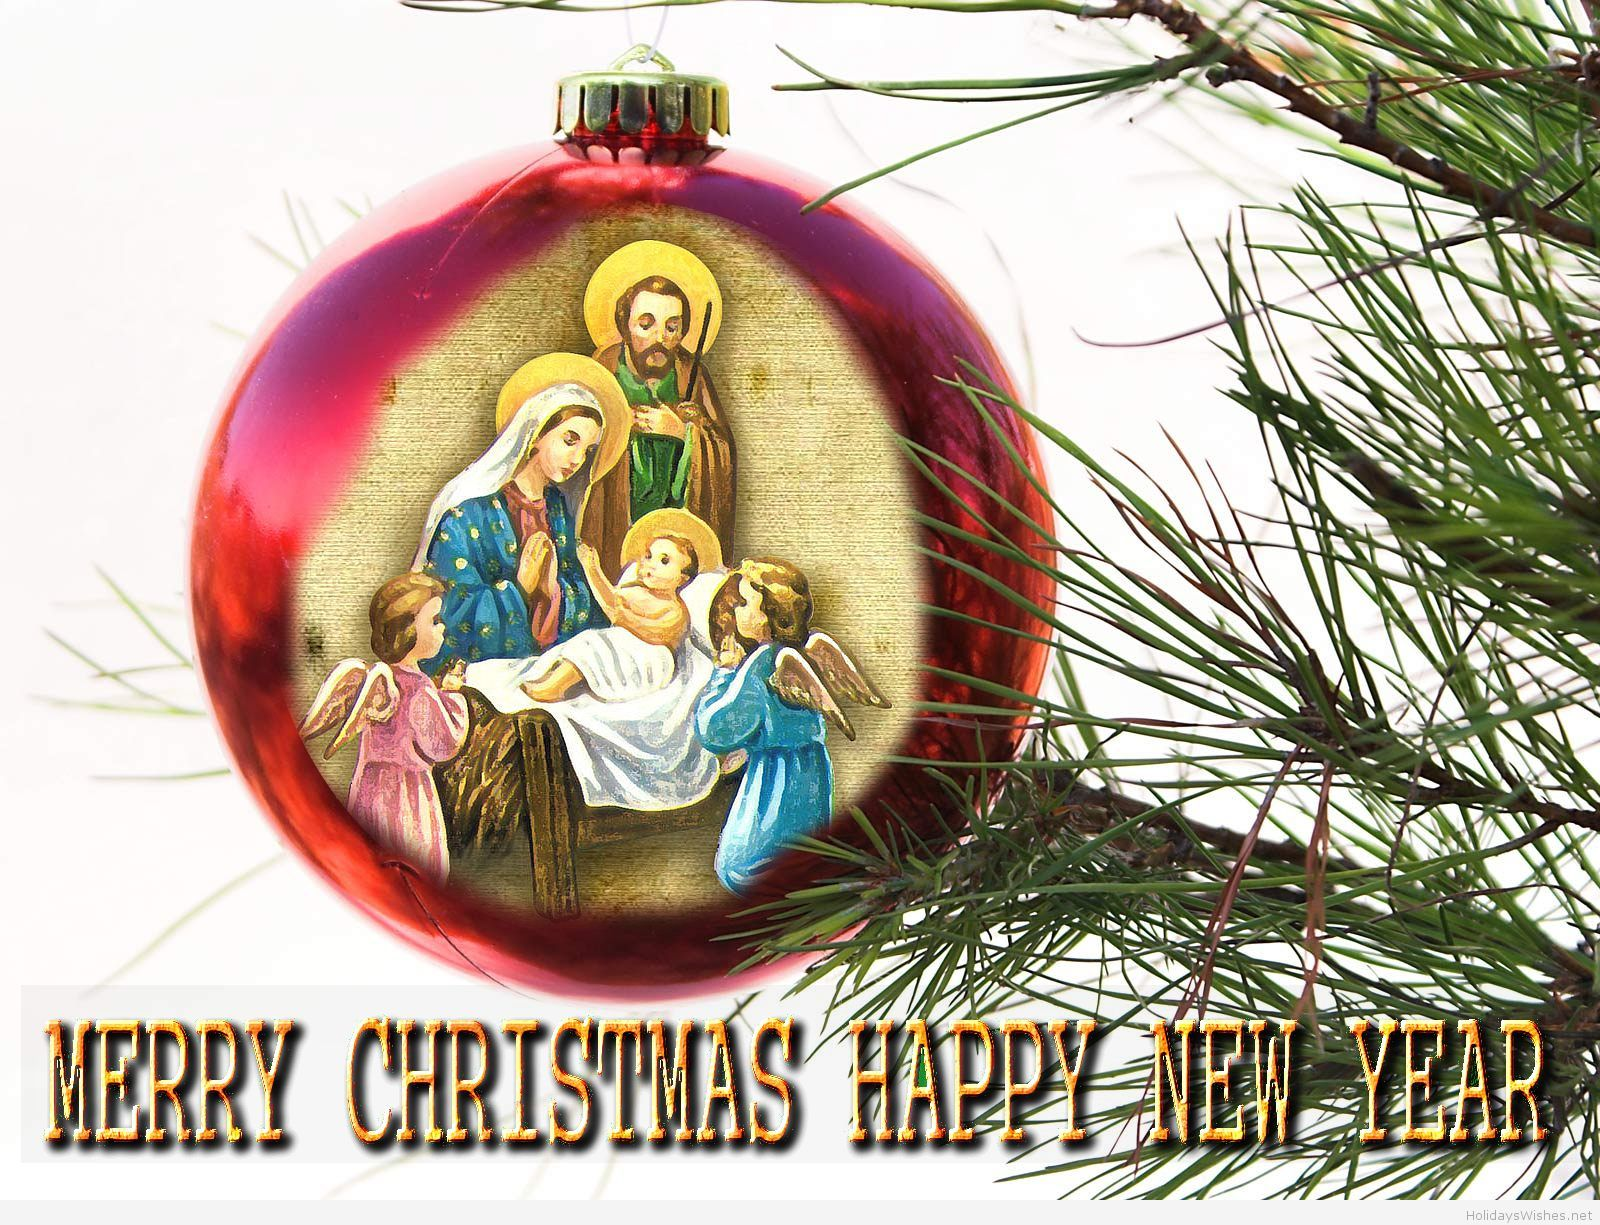 merry christmas and happy new year religious. merrychristmashappynewyearreligiouswallpaperhd1 merry christmas and happy new year religious e